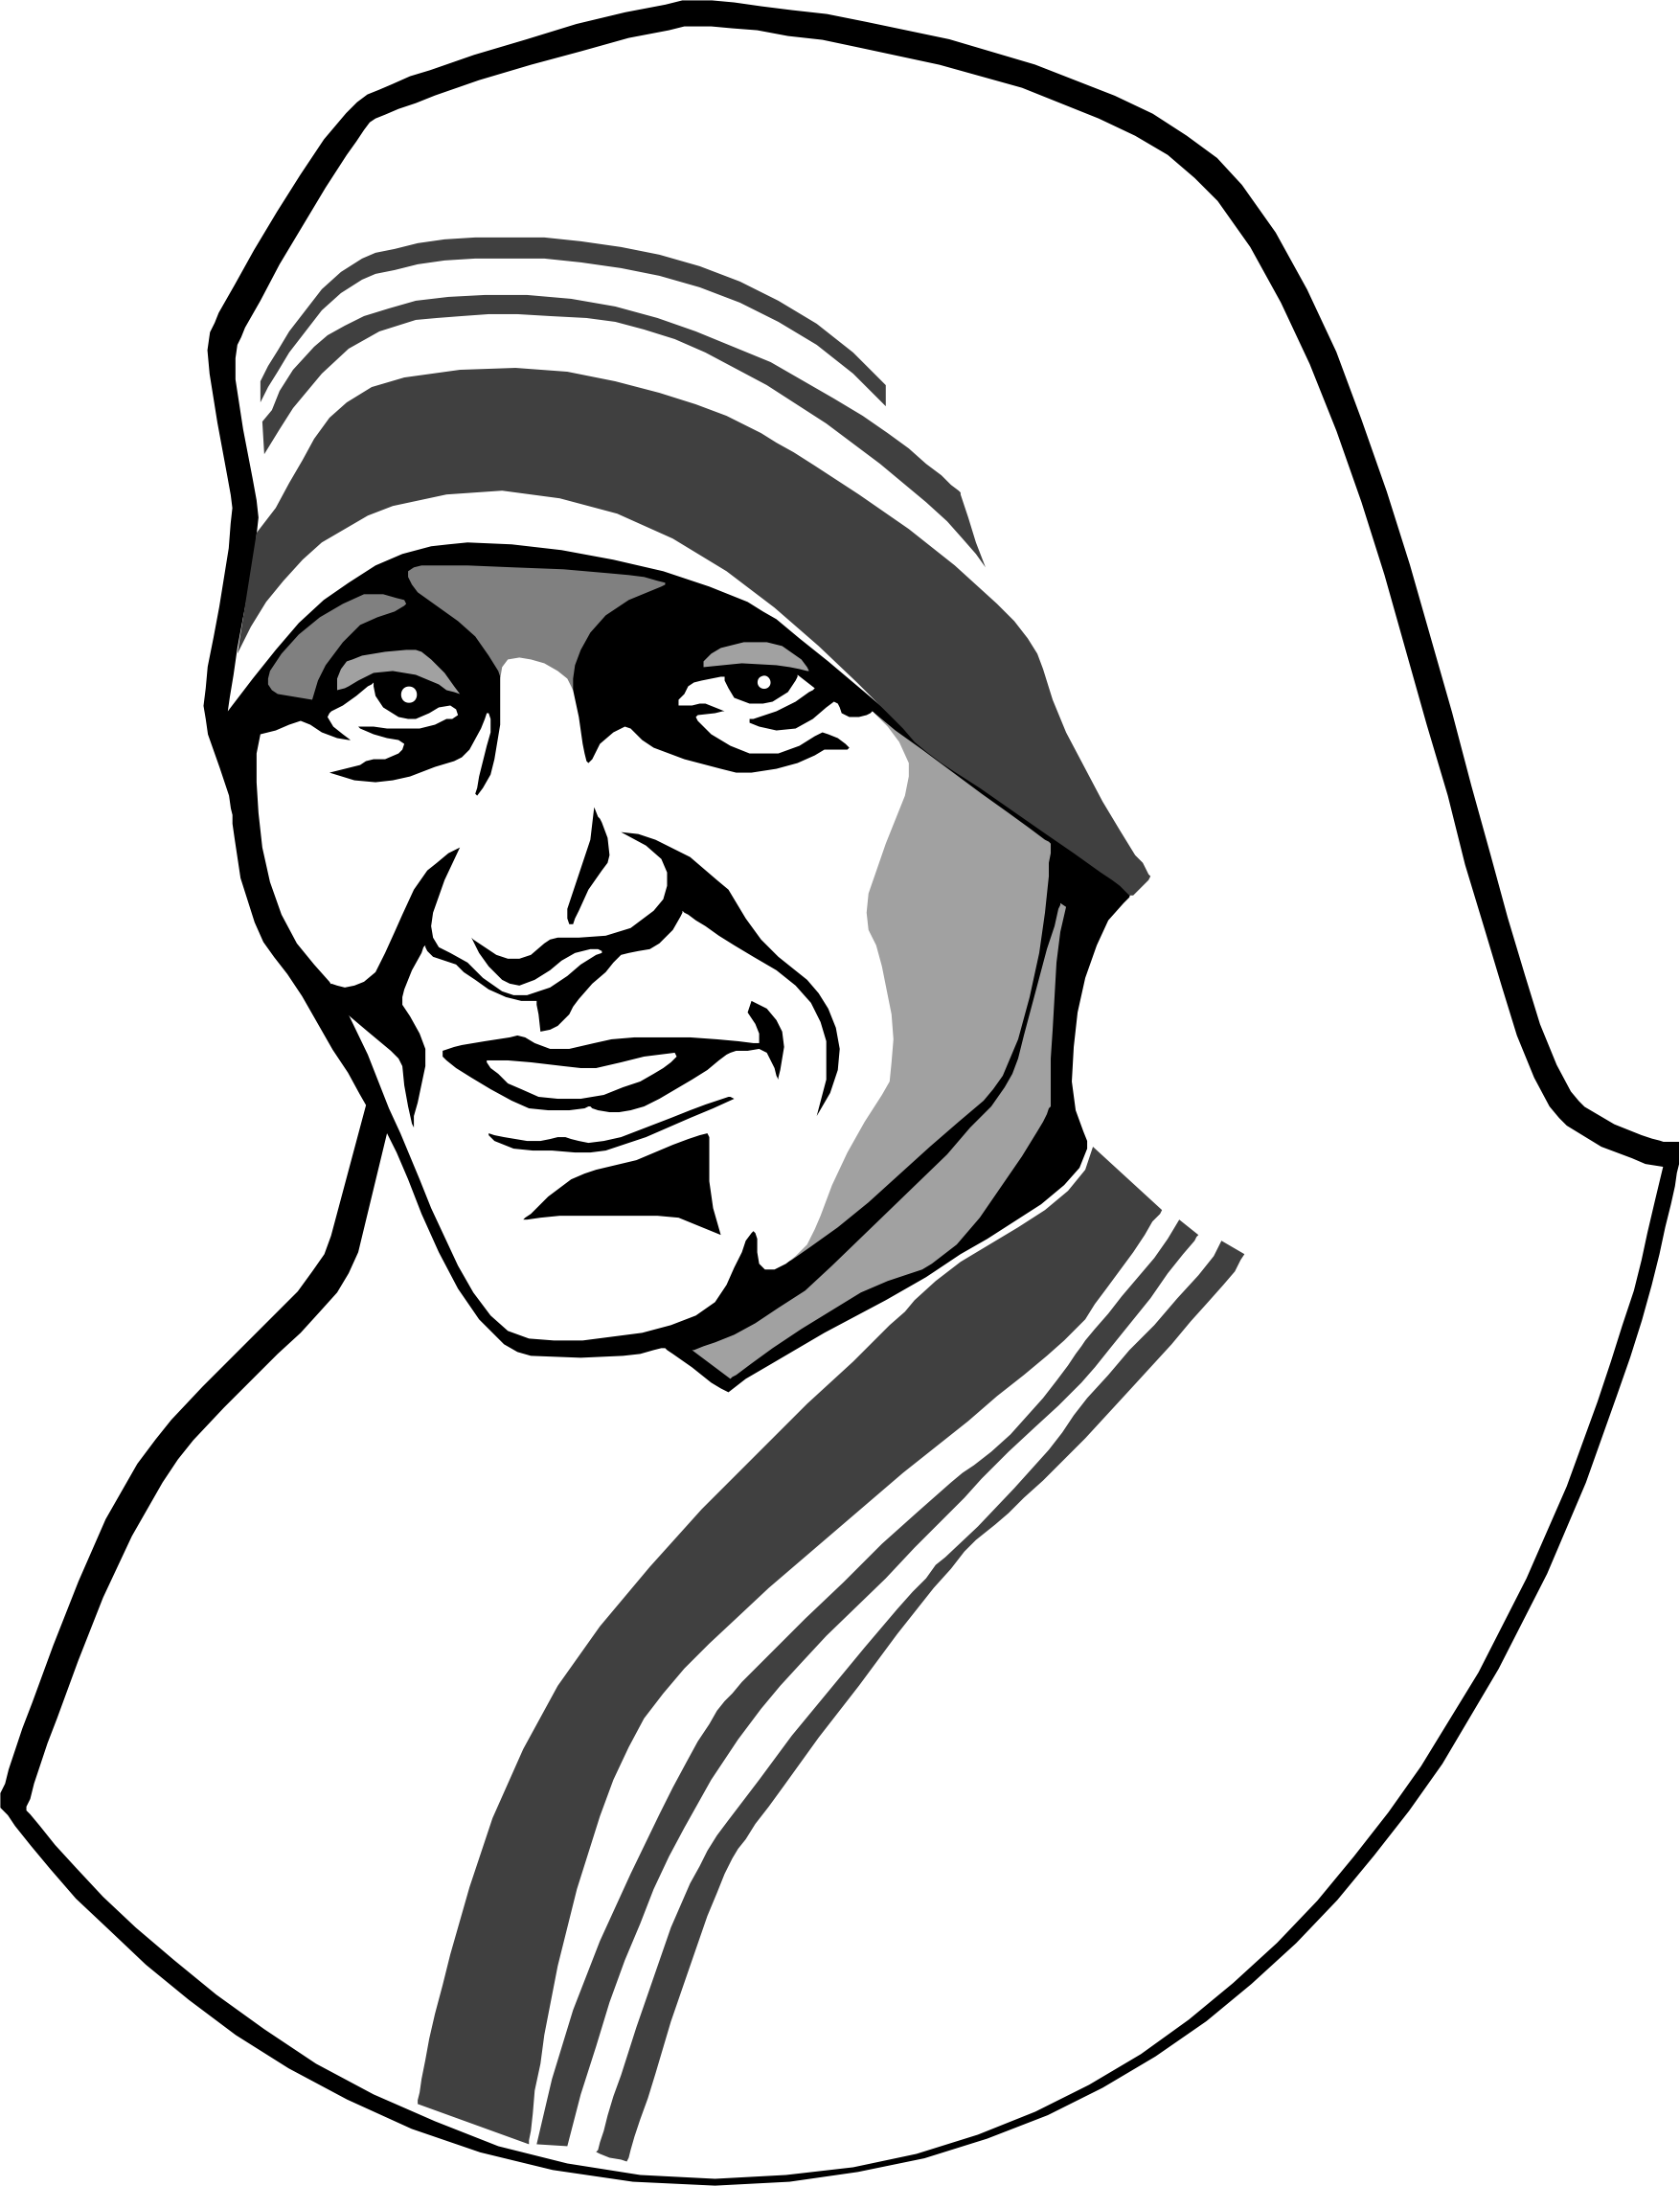 Blessed mother with crown clipart black and white vector black and white download Mother Teresa Drawing at GetDrawings.com | Free for personal use ... vector black and white download